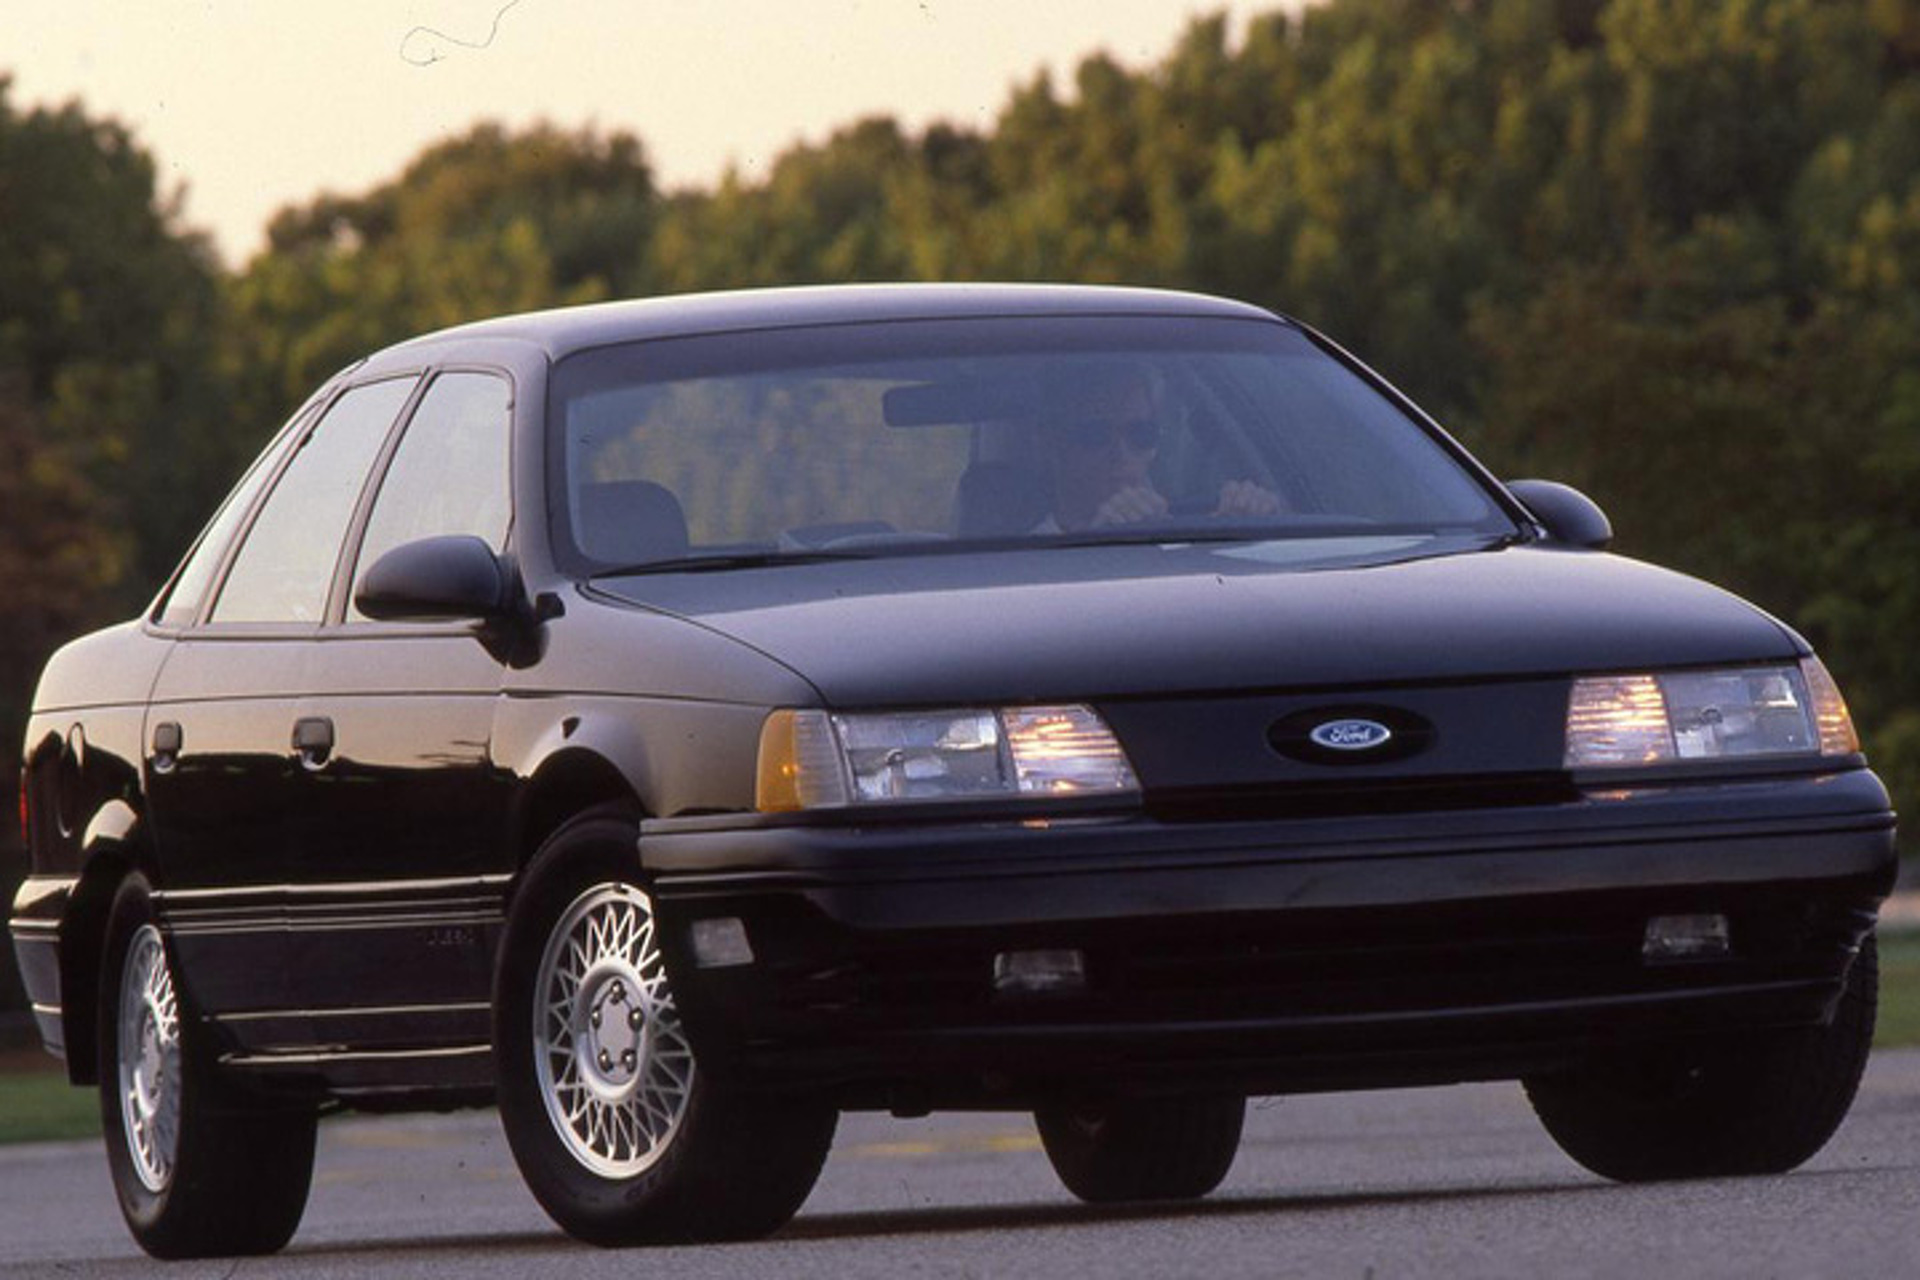 1990 Ford Taurus >> 1990 Ford Taurus Sho Pushes All The Right Buttons Throwback